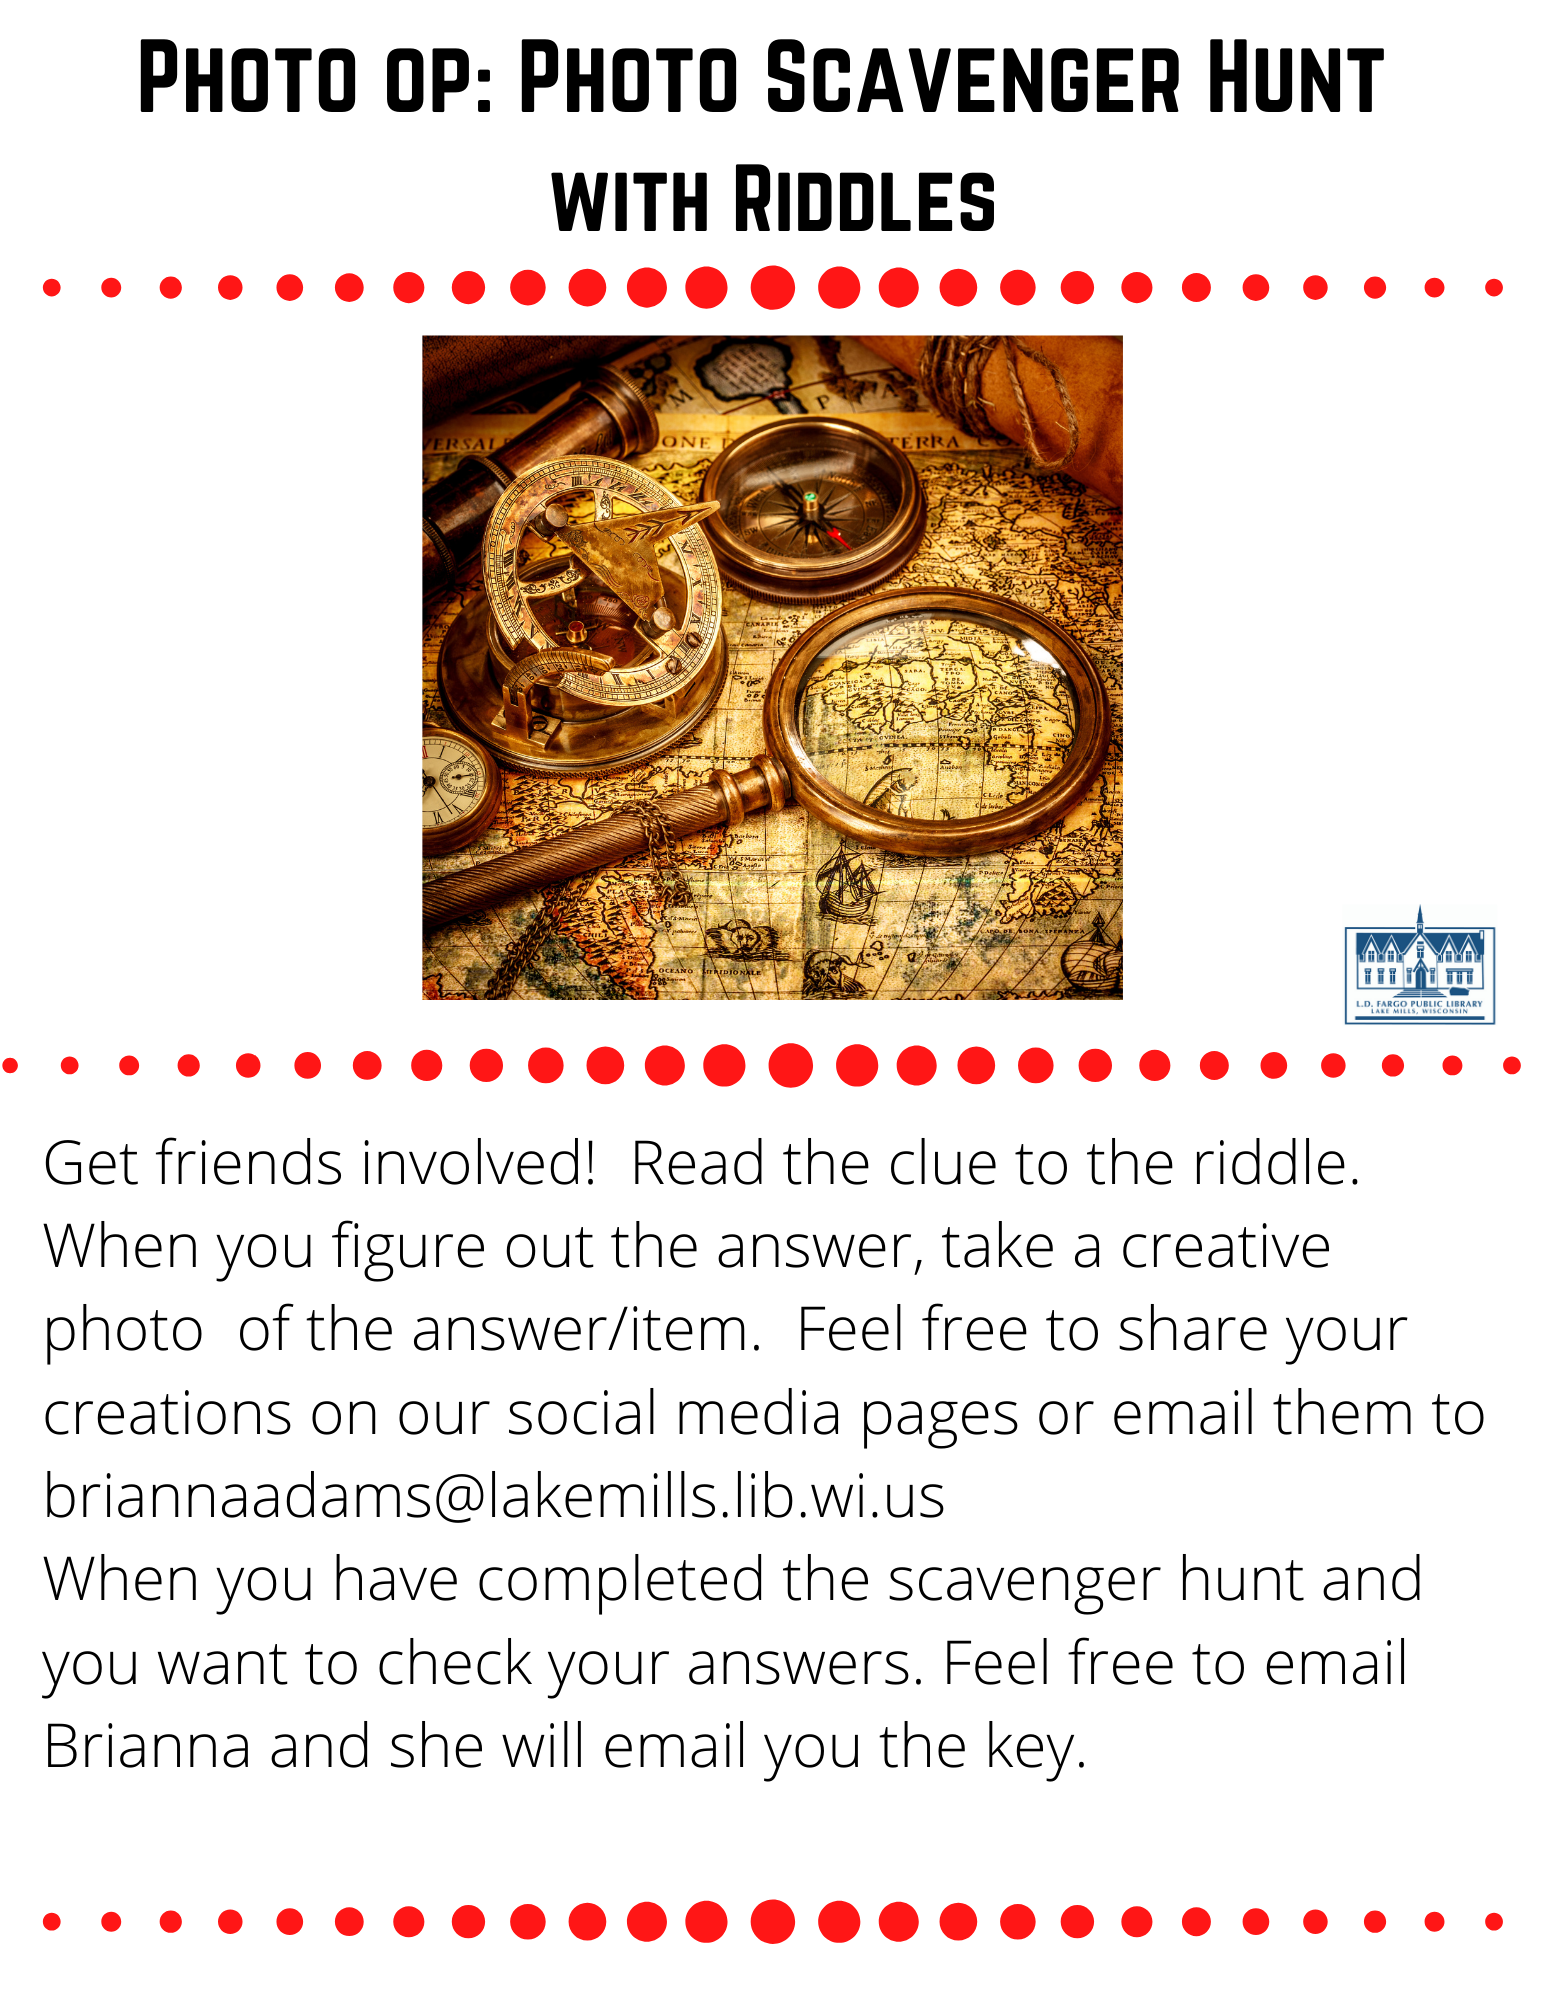 """Photo op: Photo Scavenger Hunt  with Riddles  Get friends involved!  Read the clue to the riddle.  When you figure out the answer, take a creative photo  of the answer/item.  Feel free to share your creations on our social media pages or email them to briannaadams@lakemills.lib.wi.us  When you have completed the scavenger hunt and you want to check your answers. Feel free to email Brianna and she will email you the key.   One sheet, two sheets, three sheets, or four...some use less and some use more. What am I?  I am a king or queen, but also a common device to measure. What am I? What has a ring, but no finger? What has arms and legs, but no head? I have a face that doesn't frown, I have hands that do not wave, and I have no mouth. I have a familiar sound, and I don't walk, but I move around. What am I? What can't be burned in a fire nor drowned in water?  We are not flesh, feather, scales nor bone, yet we still have fingers and thumbs of our own. What are we? I don't go out and play, I just stay home all day. I'm nice you might agree, but mostly your feet just rub on me? The more I dry, the wetter I become? What is filled six days a week, but if you don't own it you can't take a peek? I have a sound that goes beep, and though time I do keep, my main function is to heat? Some take me in the morning, others take me in the evening, but one thing you should know, that when I'm """"taken""""- I don't really go anywhere.  What am I? 13. I have a big mouth and I'm quite a load. I'm not gossip, but I get involved in everyone's dirty business. What am I? 14. I am full of holes, but still hold water. What am I? 15. Here is the place where the scared(y) cat sleeps, you won't find any treasures under his feet. Of old dirty socks, you''ll follow the smell, and find your next clue where the monsters dwell. Where am I?"""